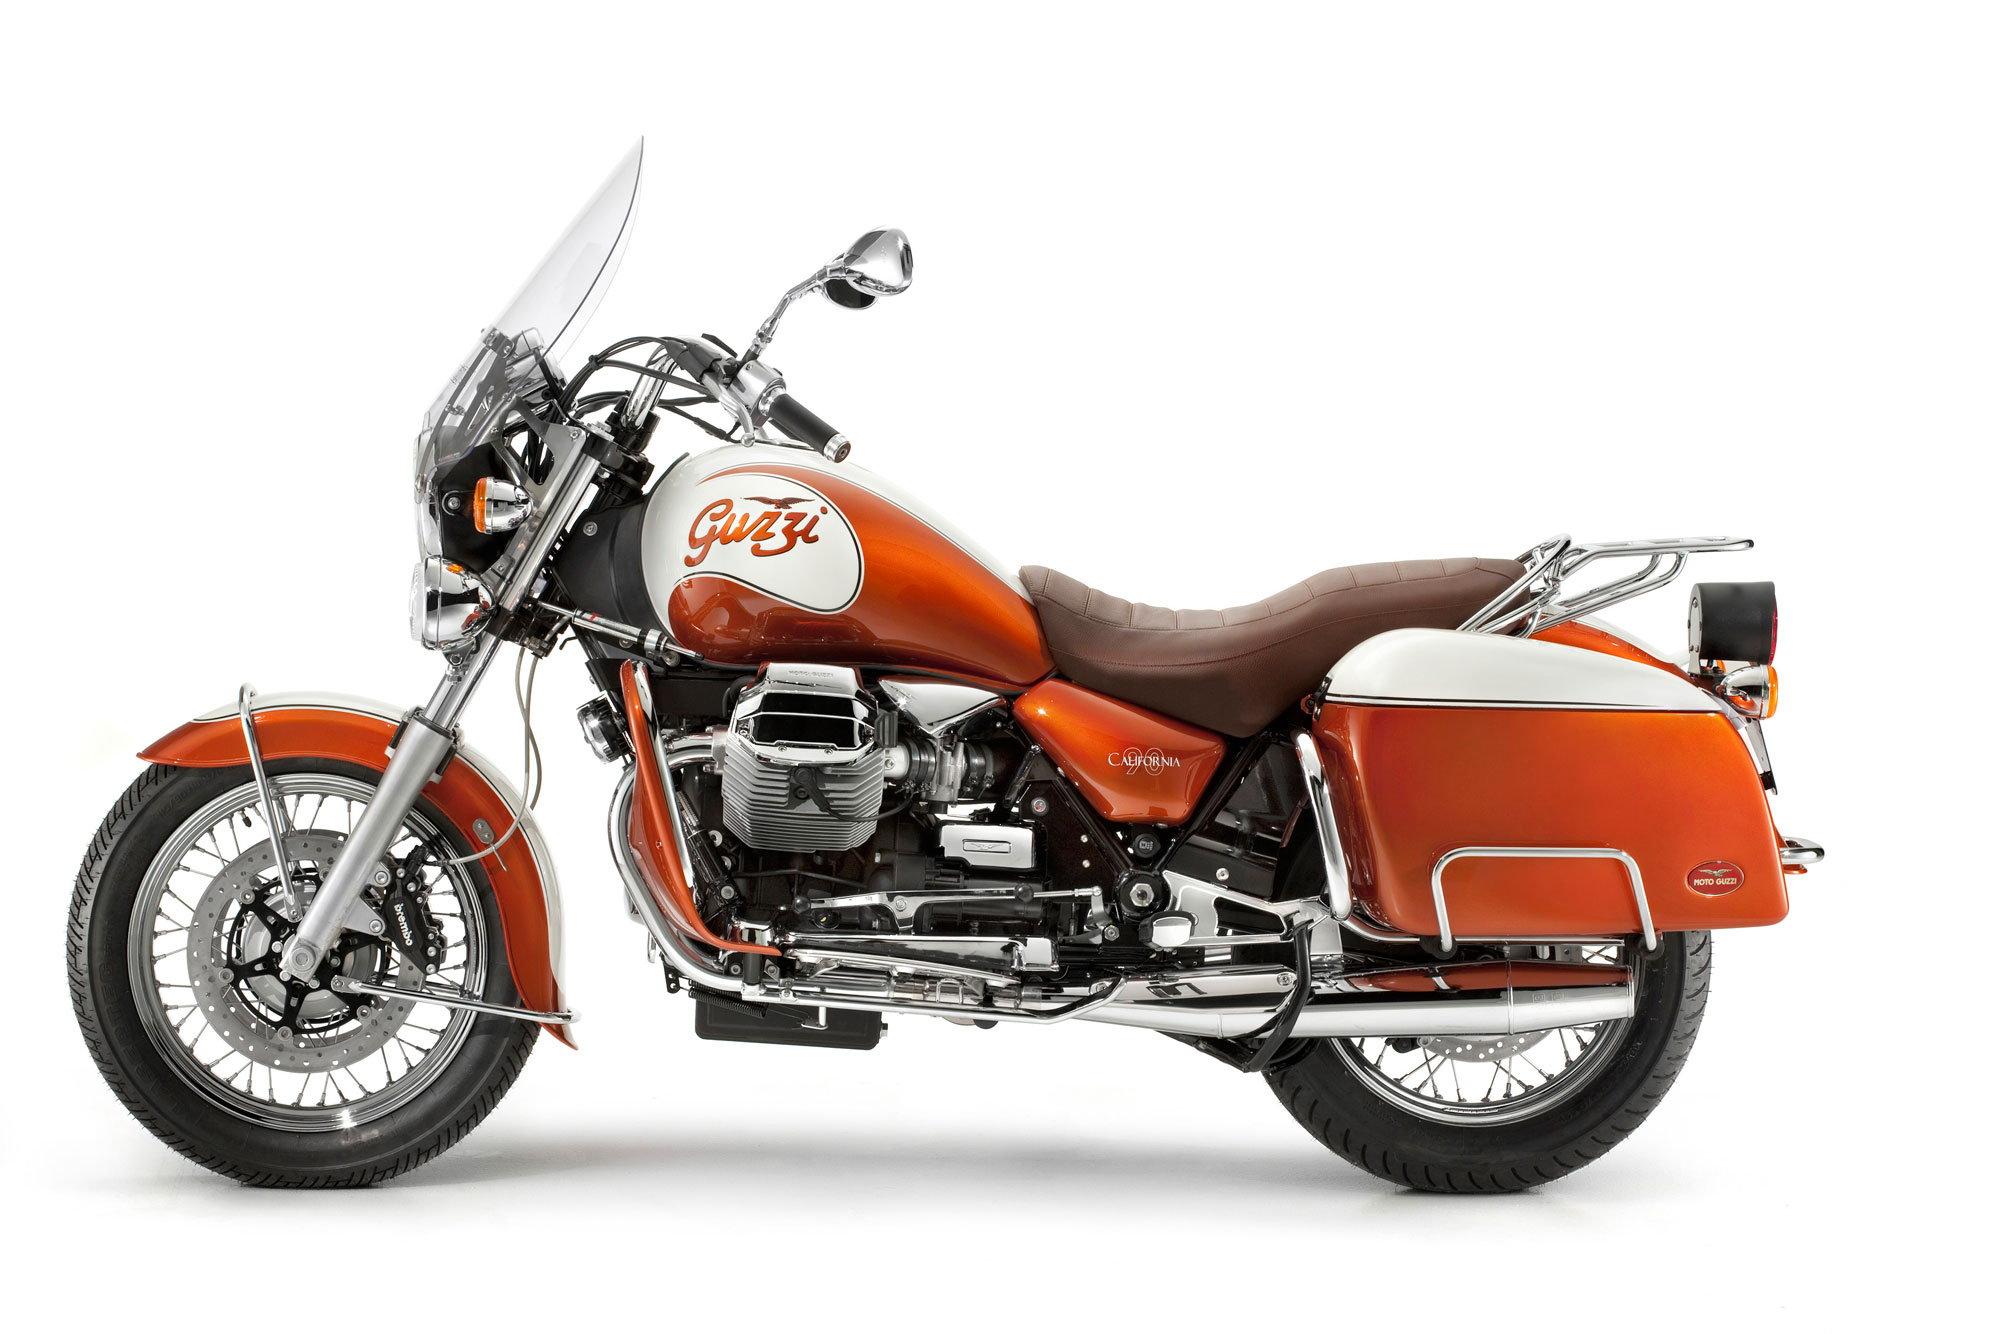 Moto Guzzi California III 1993 images #108660